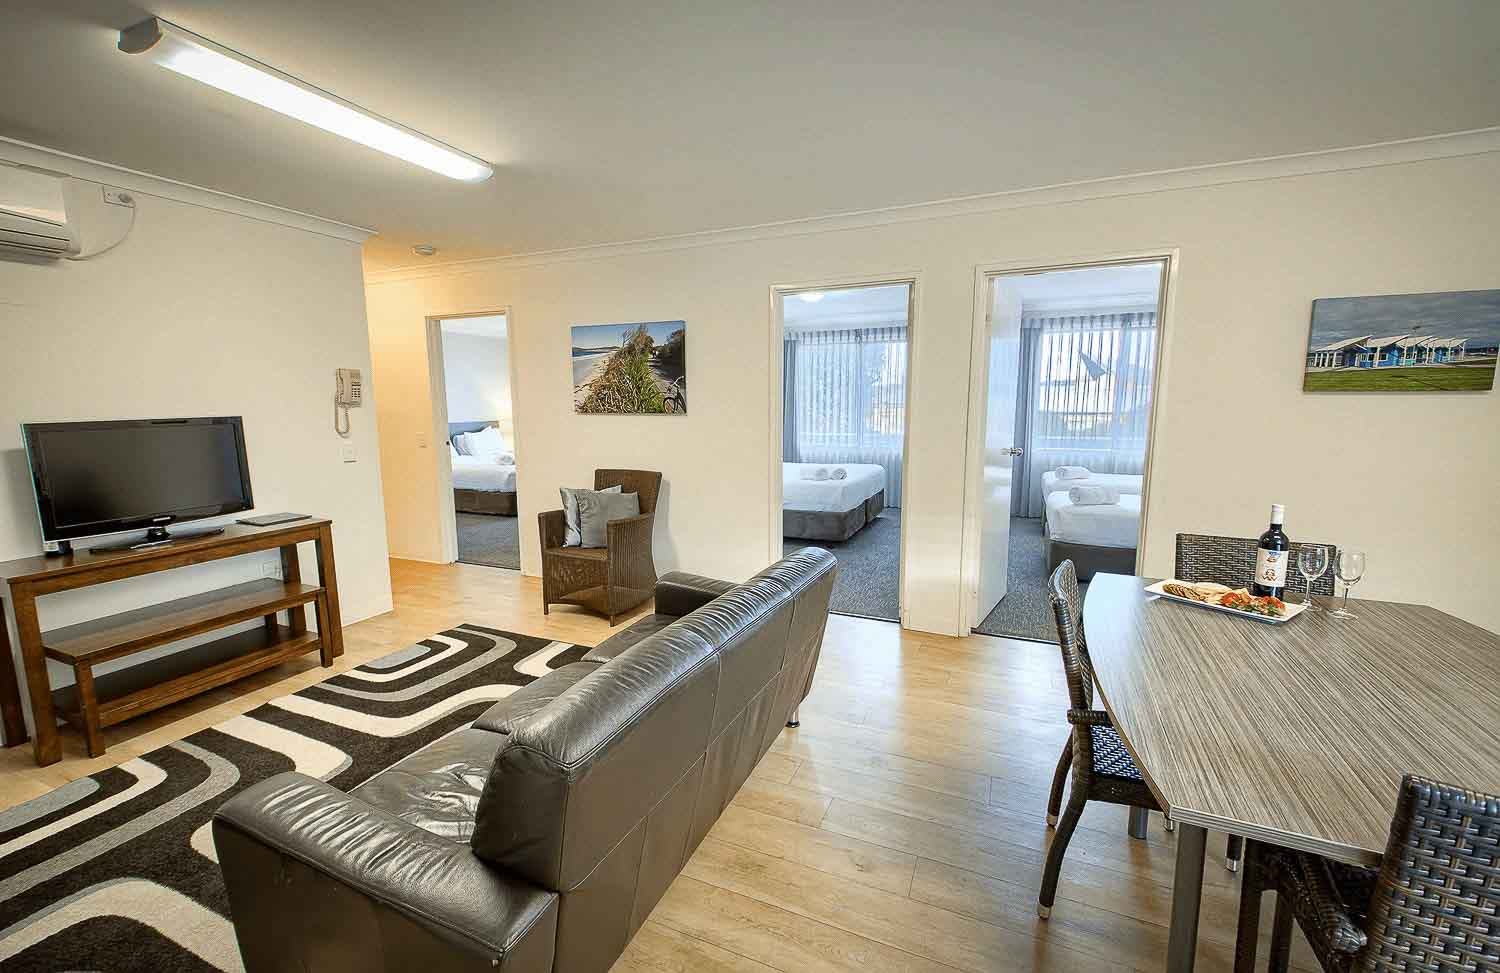 3 Bedroom Apartment - A spacious, fully self-contained 3 bedroom apartment.